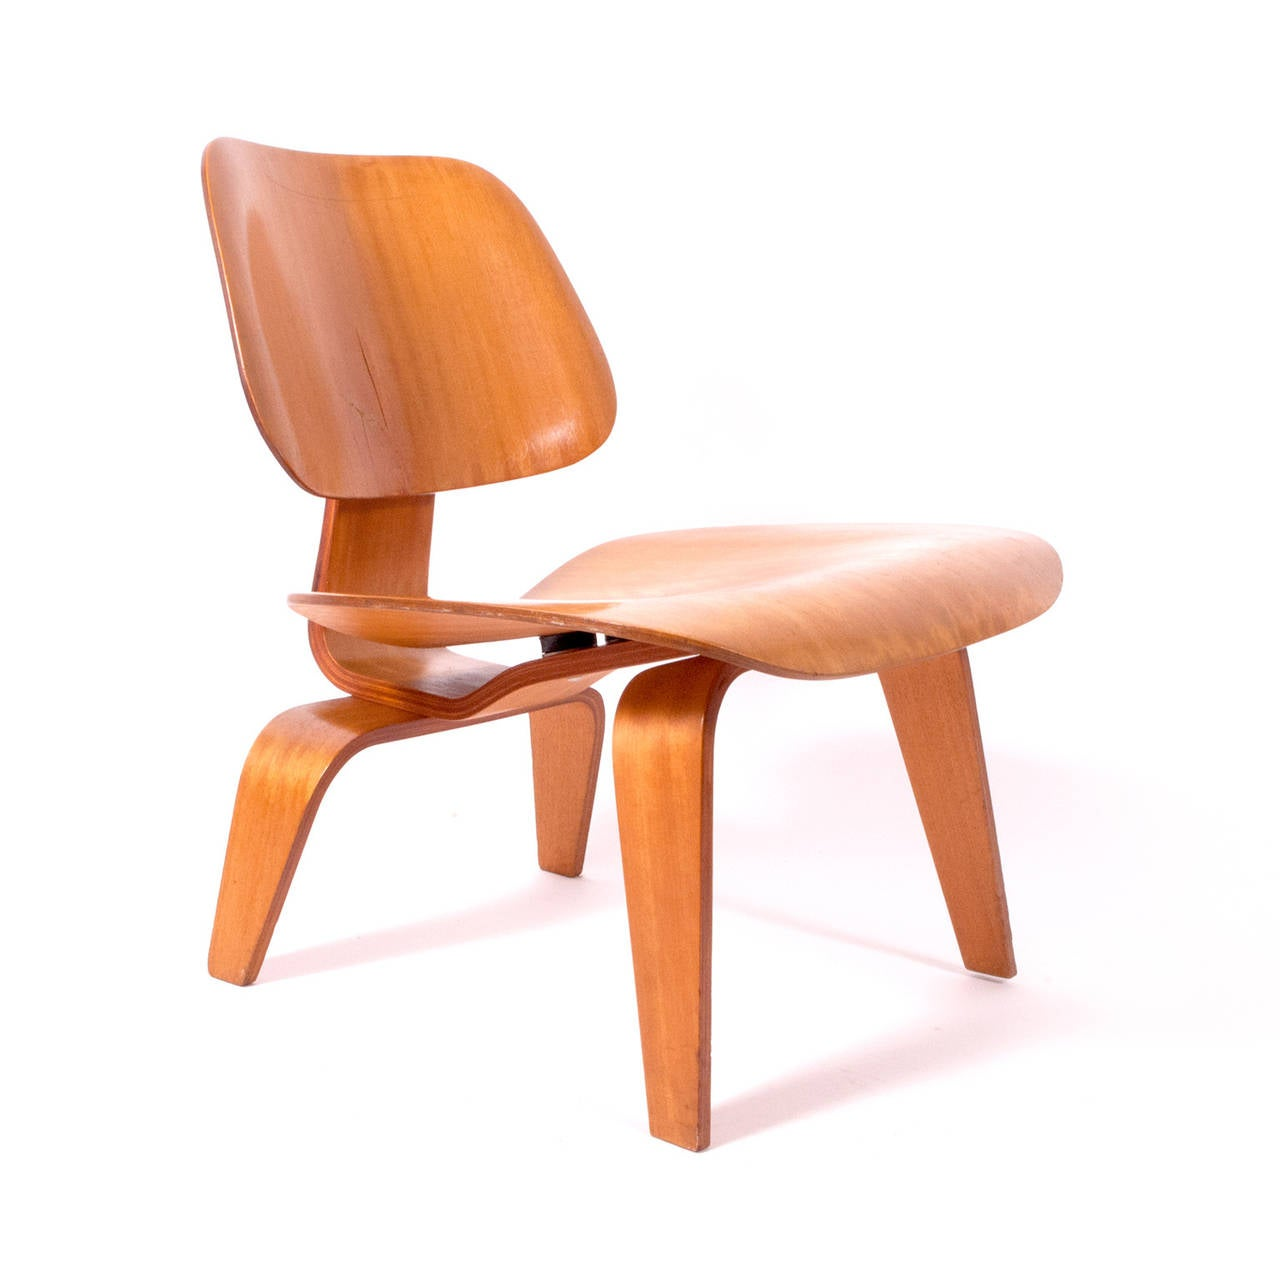 Pre production lcw charles and ray eames chair 1945 at for Charles eames lounge chair preisvergleich